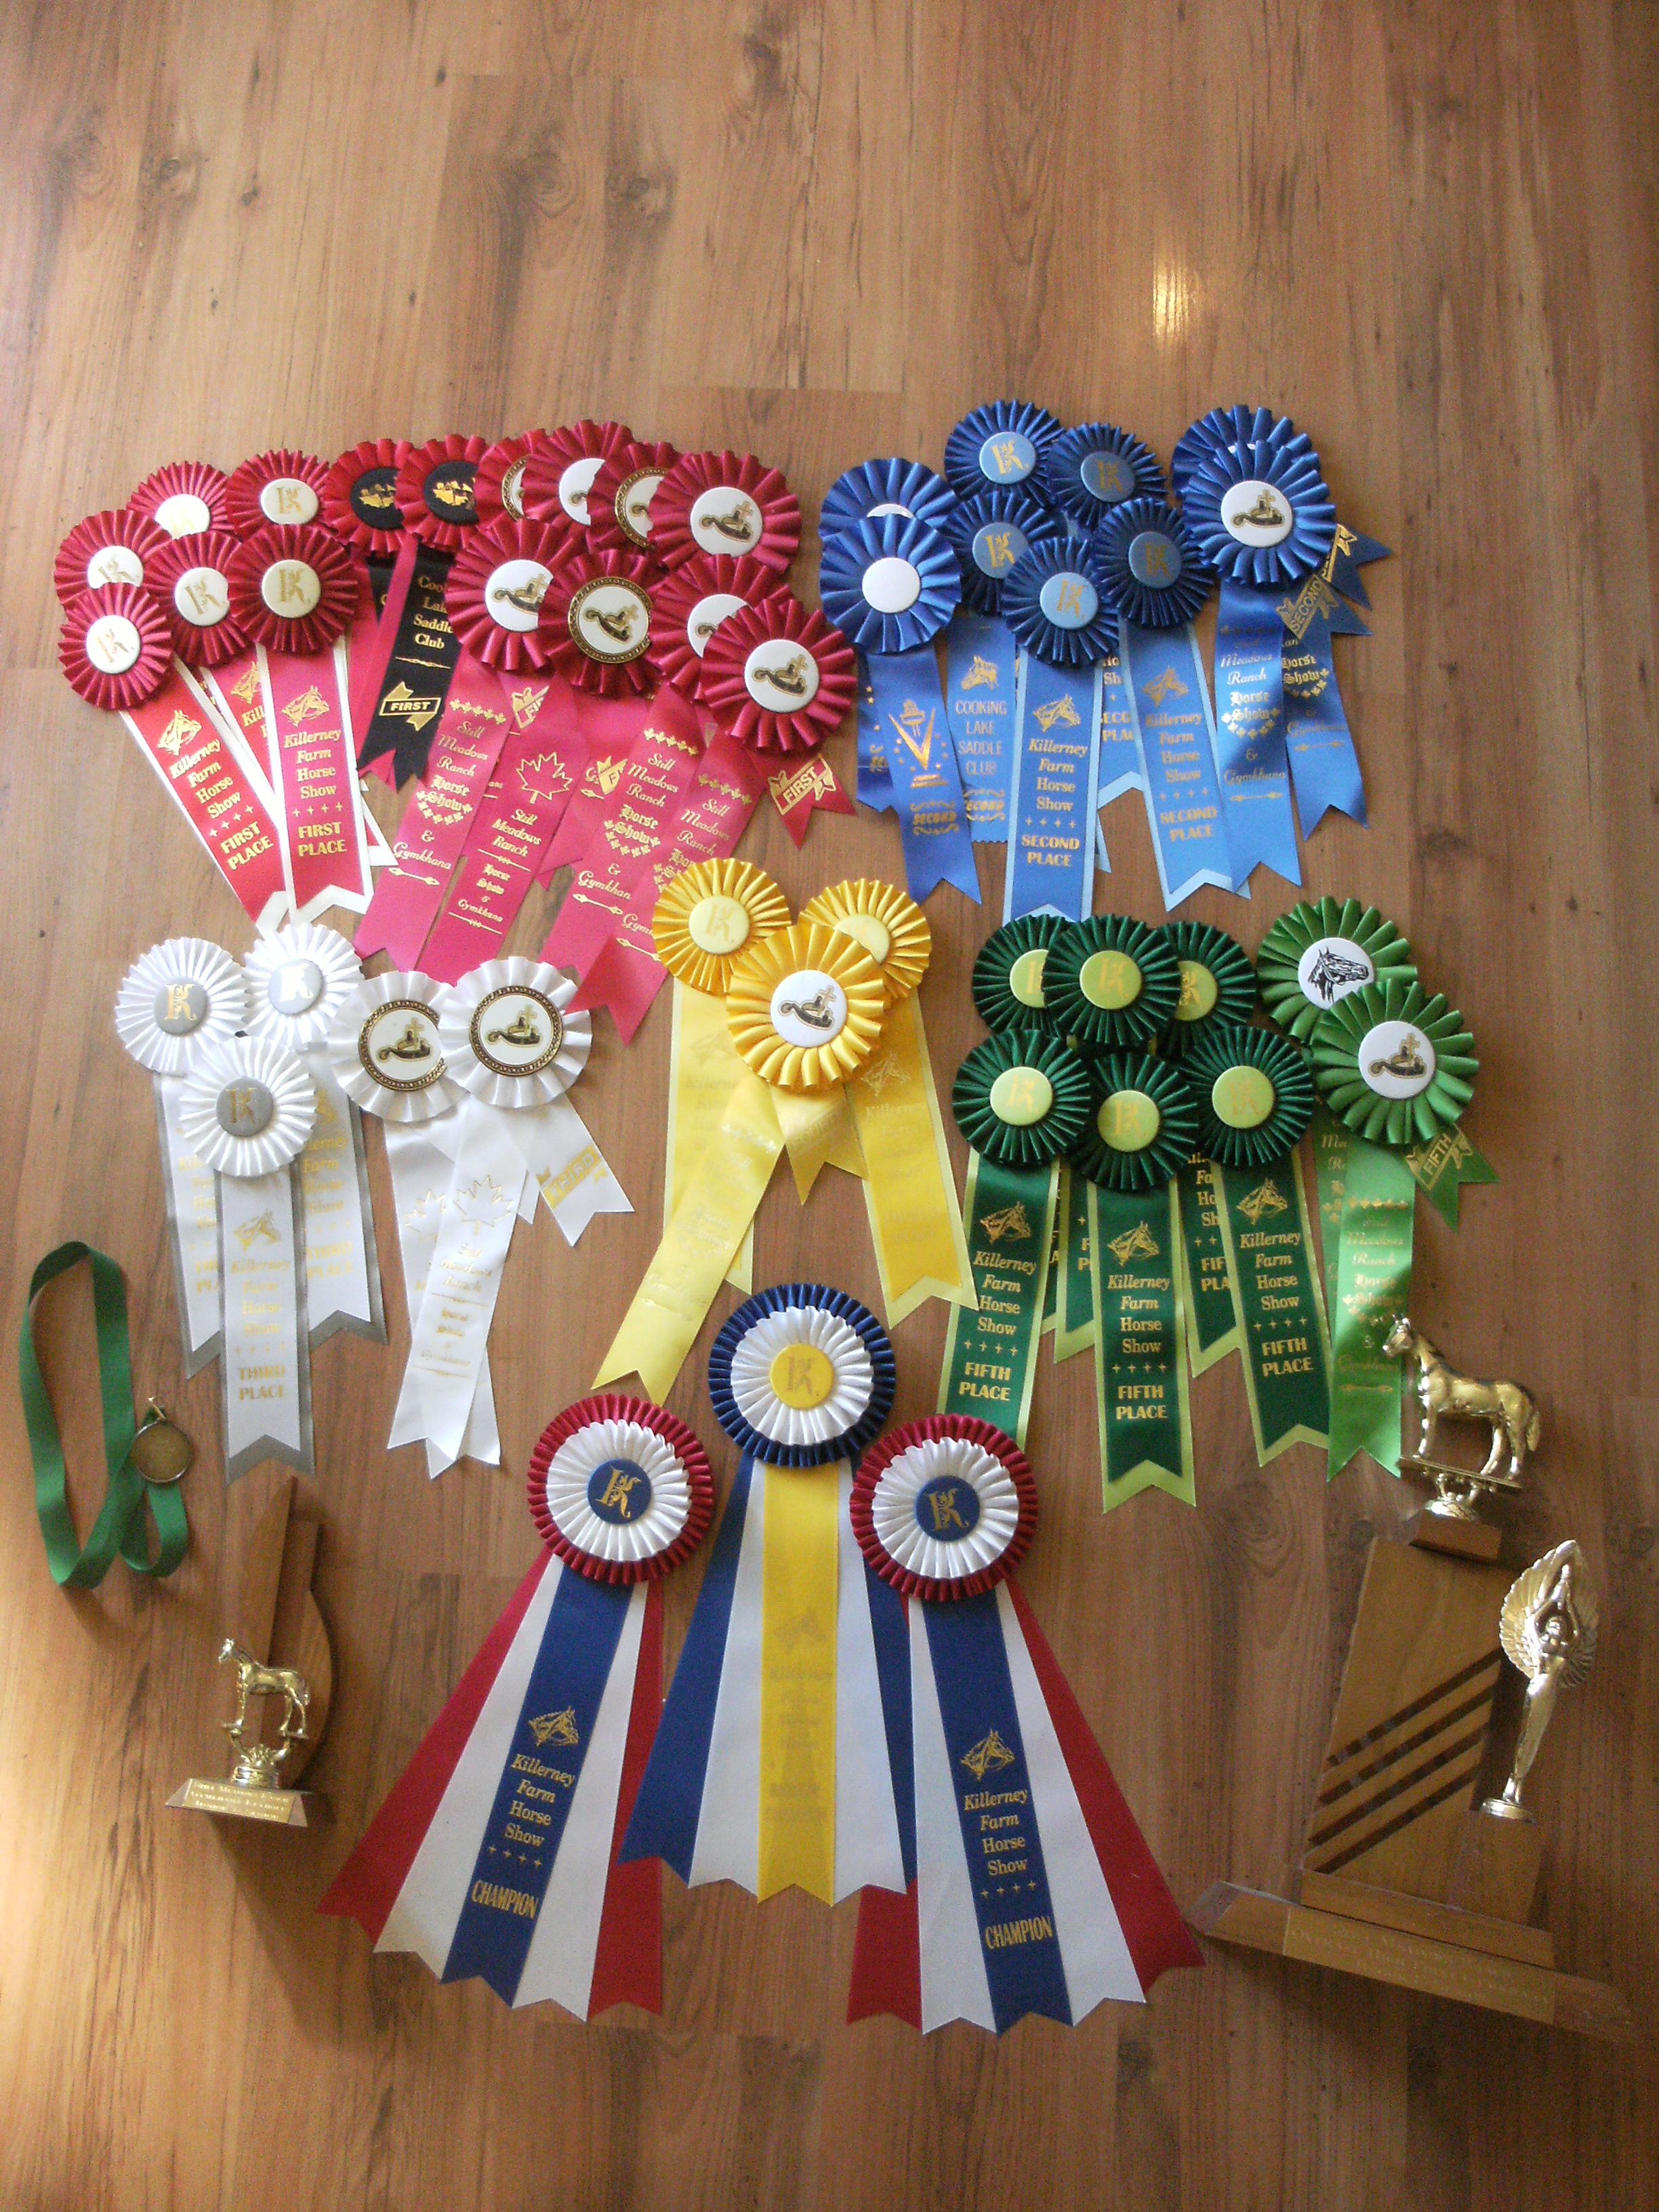 2010 Show Season - Some Ribbons Missing - They got put in a box, and I dont know what happened to it!